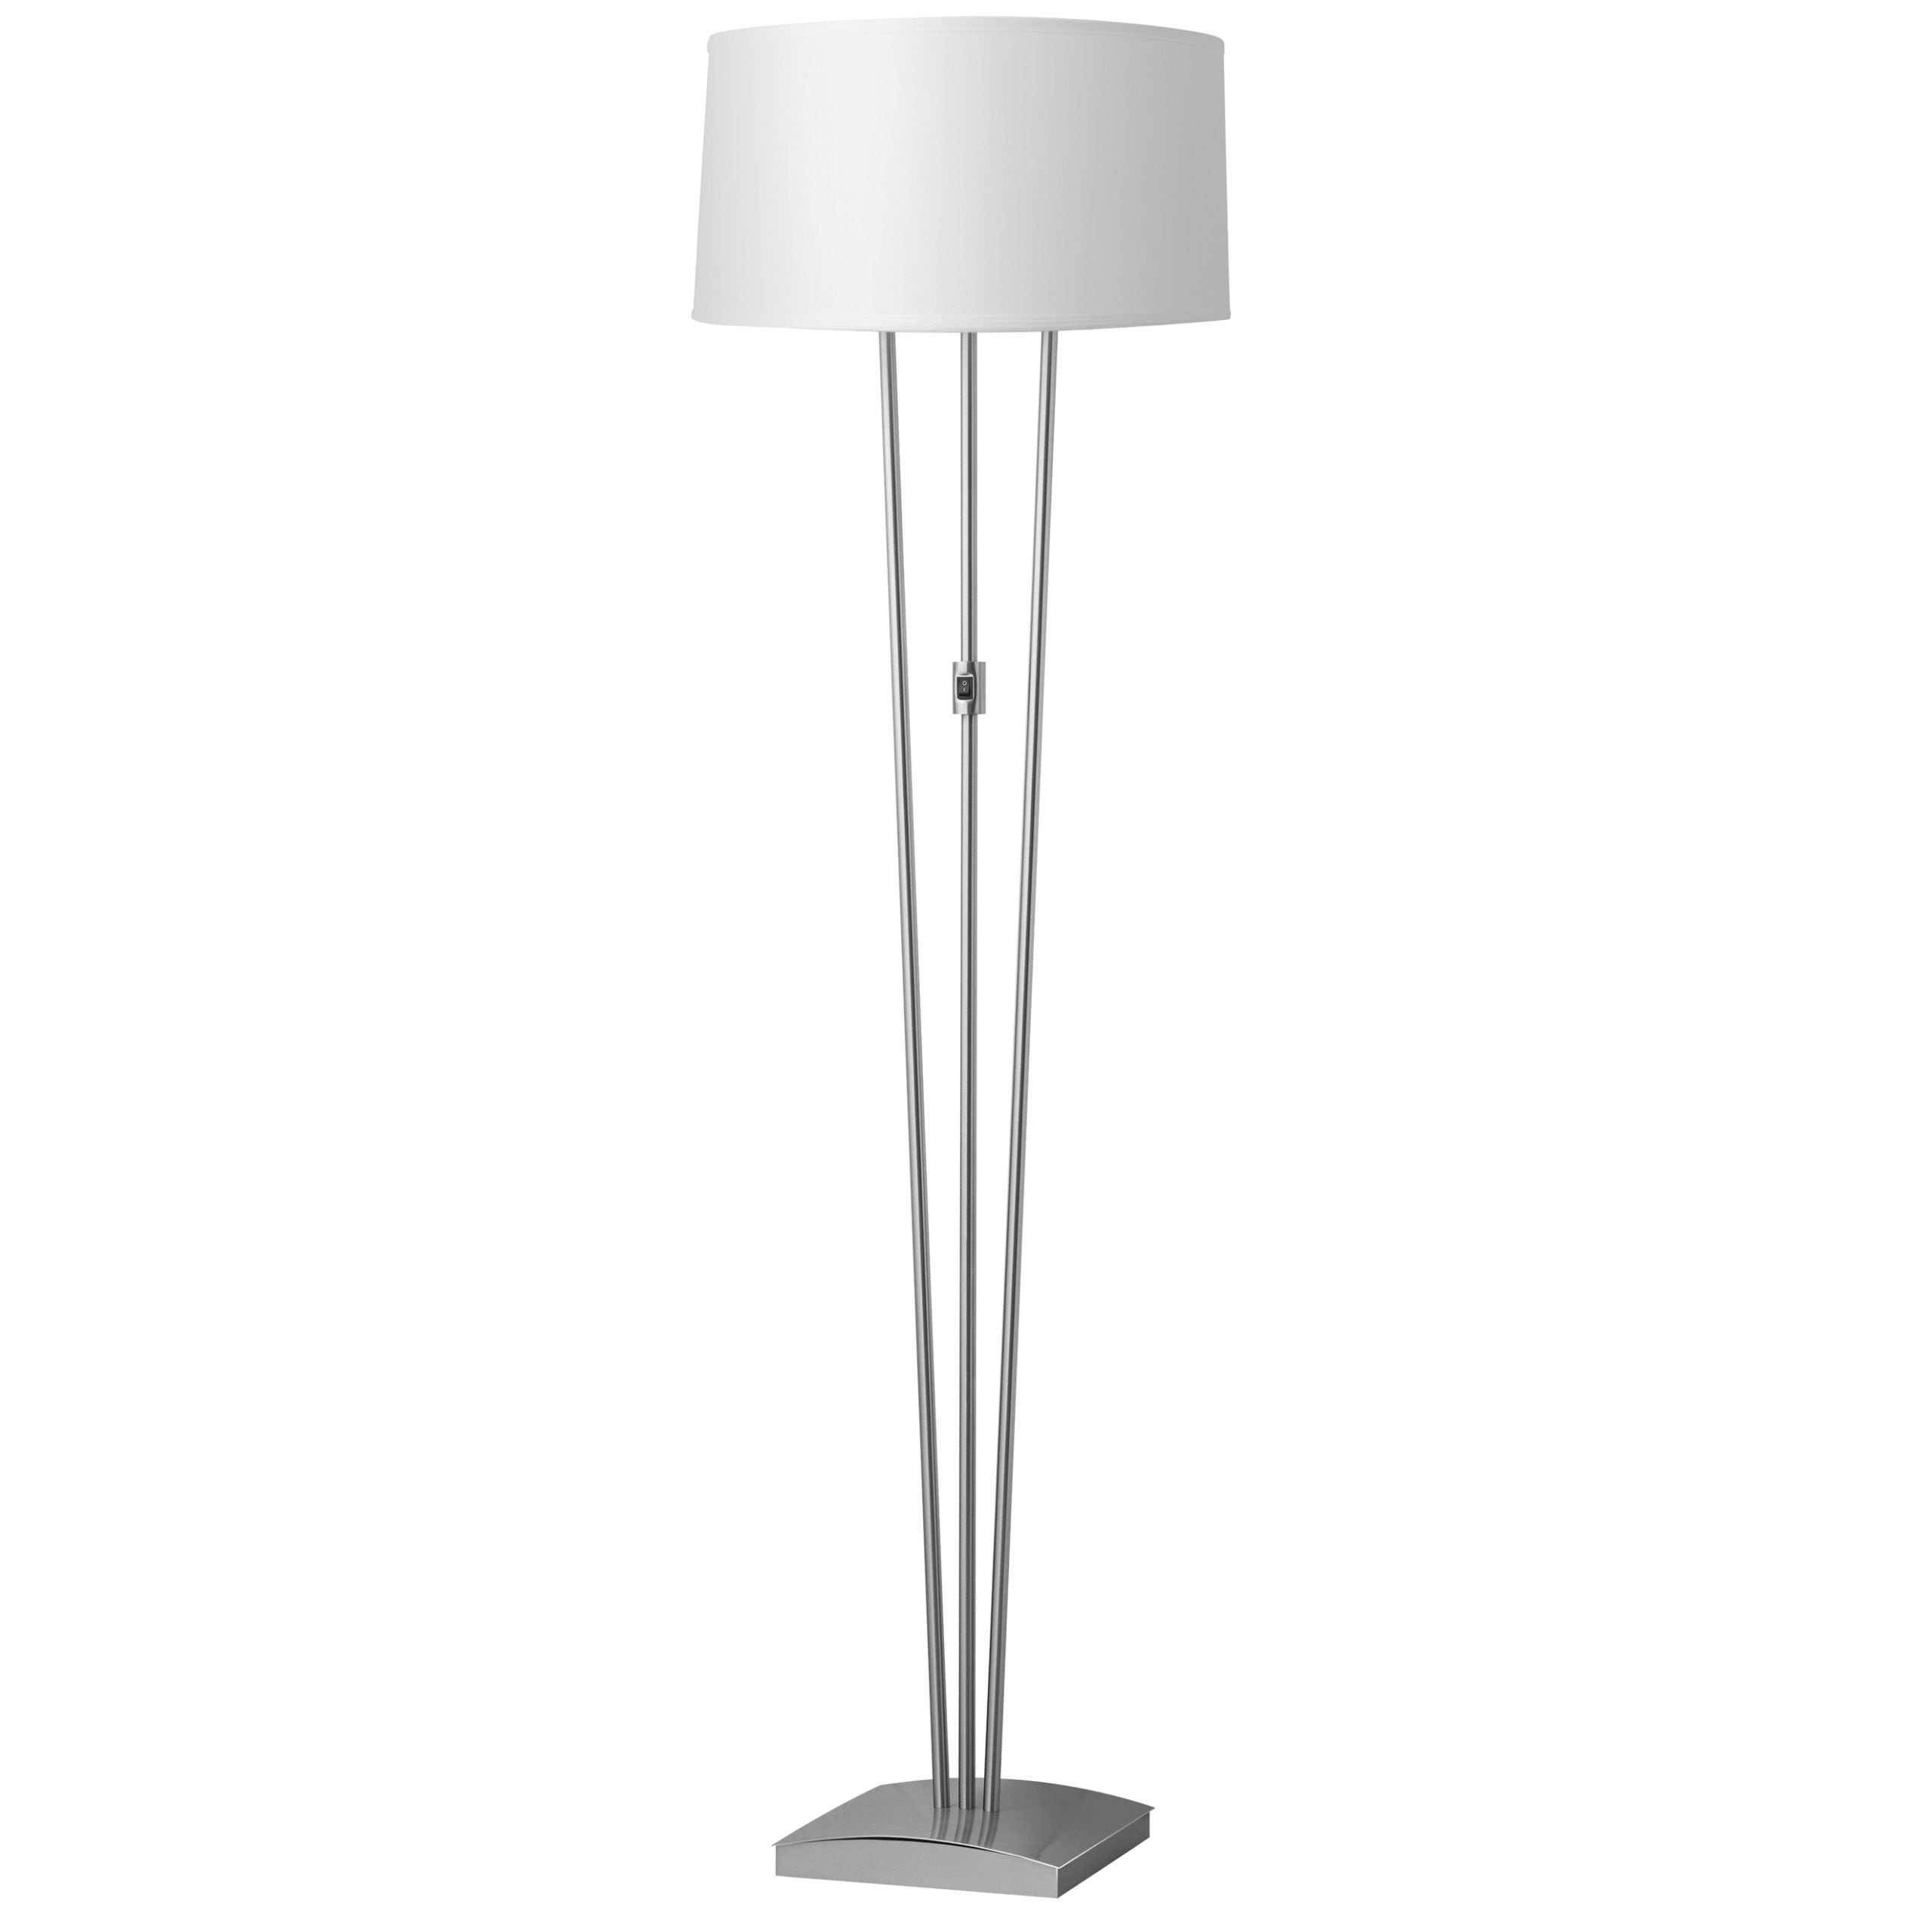 Breeze Floor Lamp - B